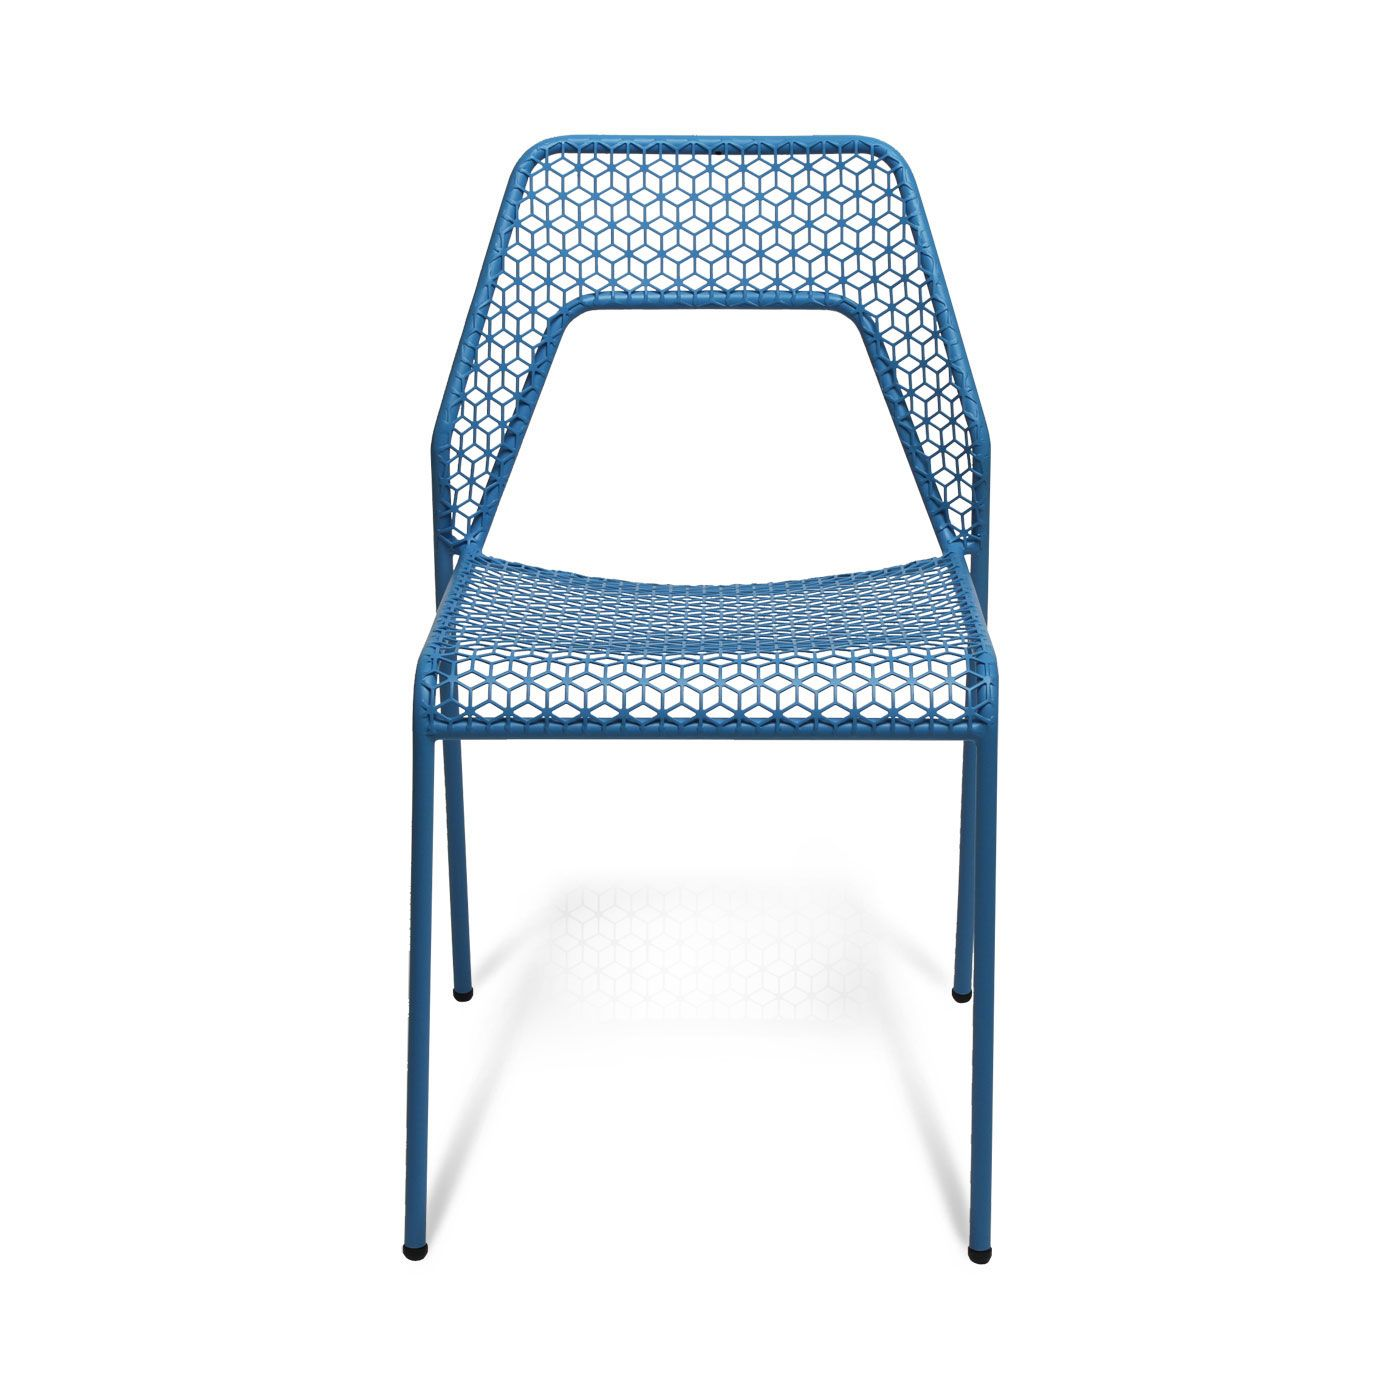 Hot Mesh Chair Indoor Outdoor Chair Outdoor Dining Chairs Mesh Chair